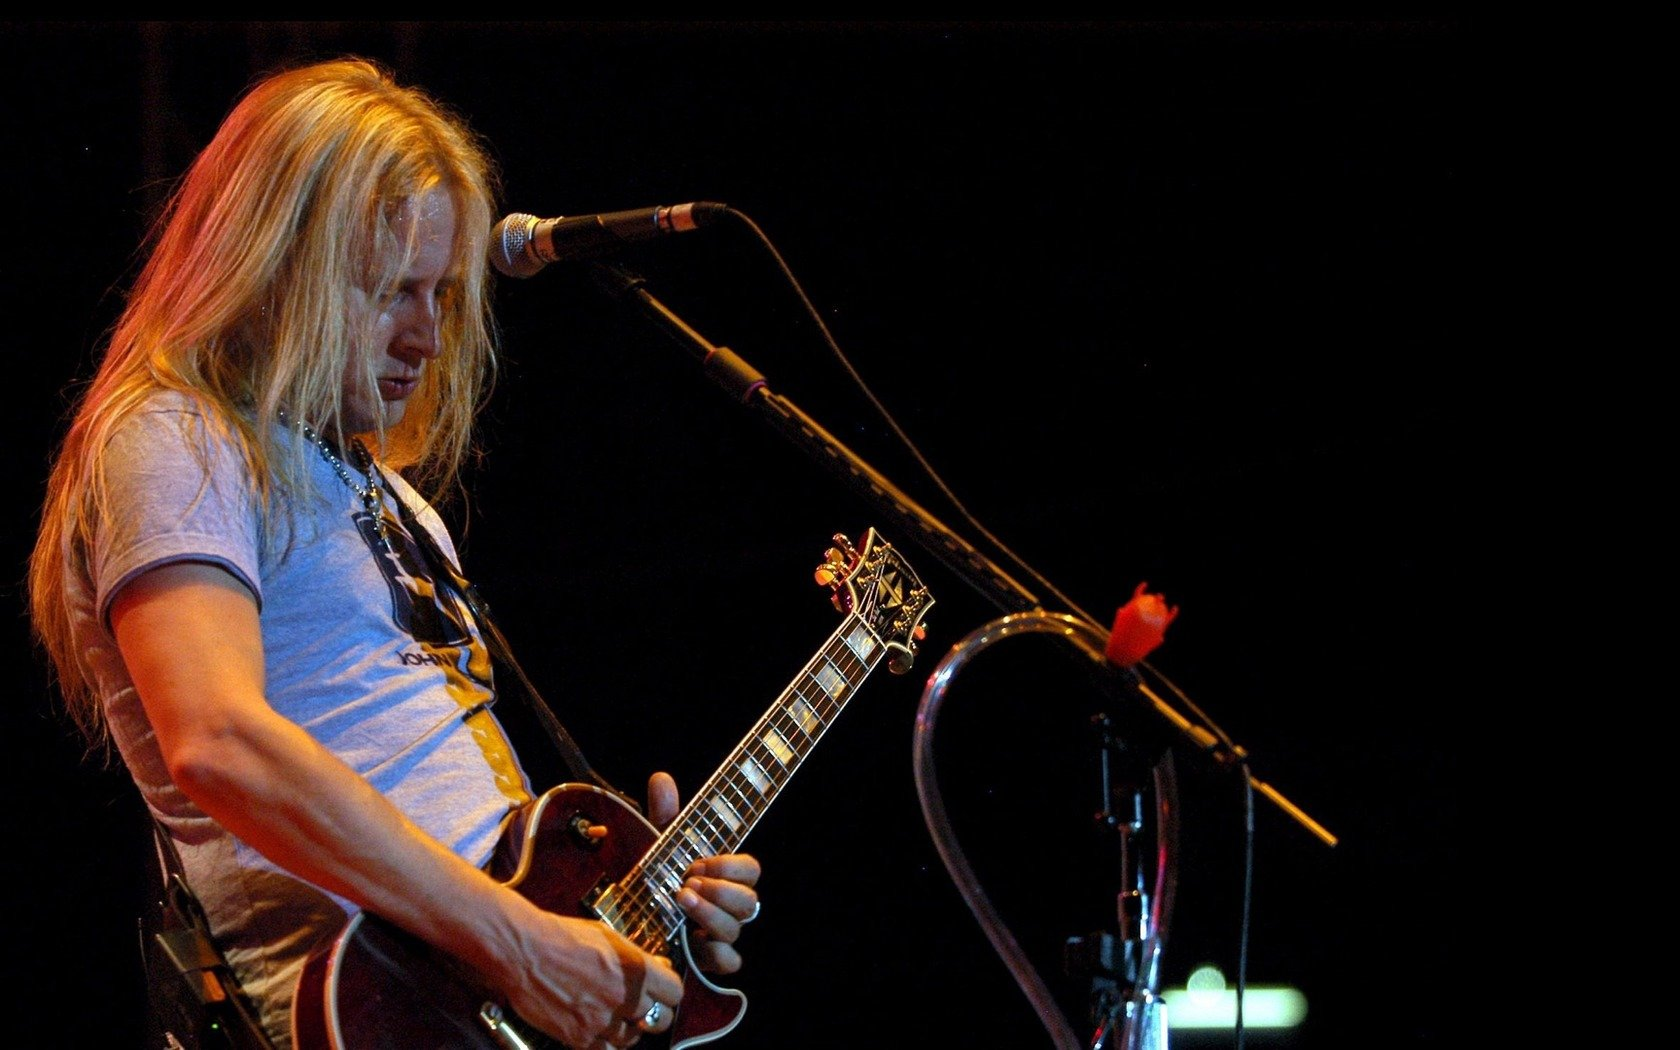 Download wallpaper 1680x1050 jerry cantrell guitar microphone 1680x1050